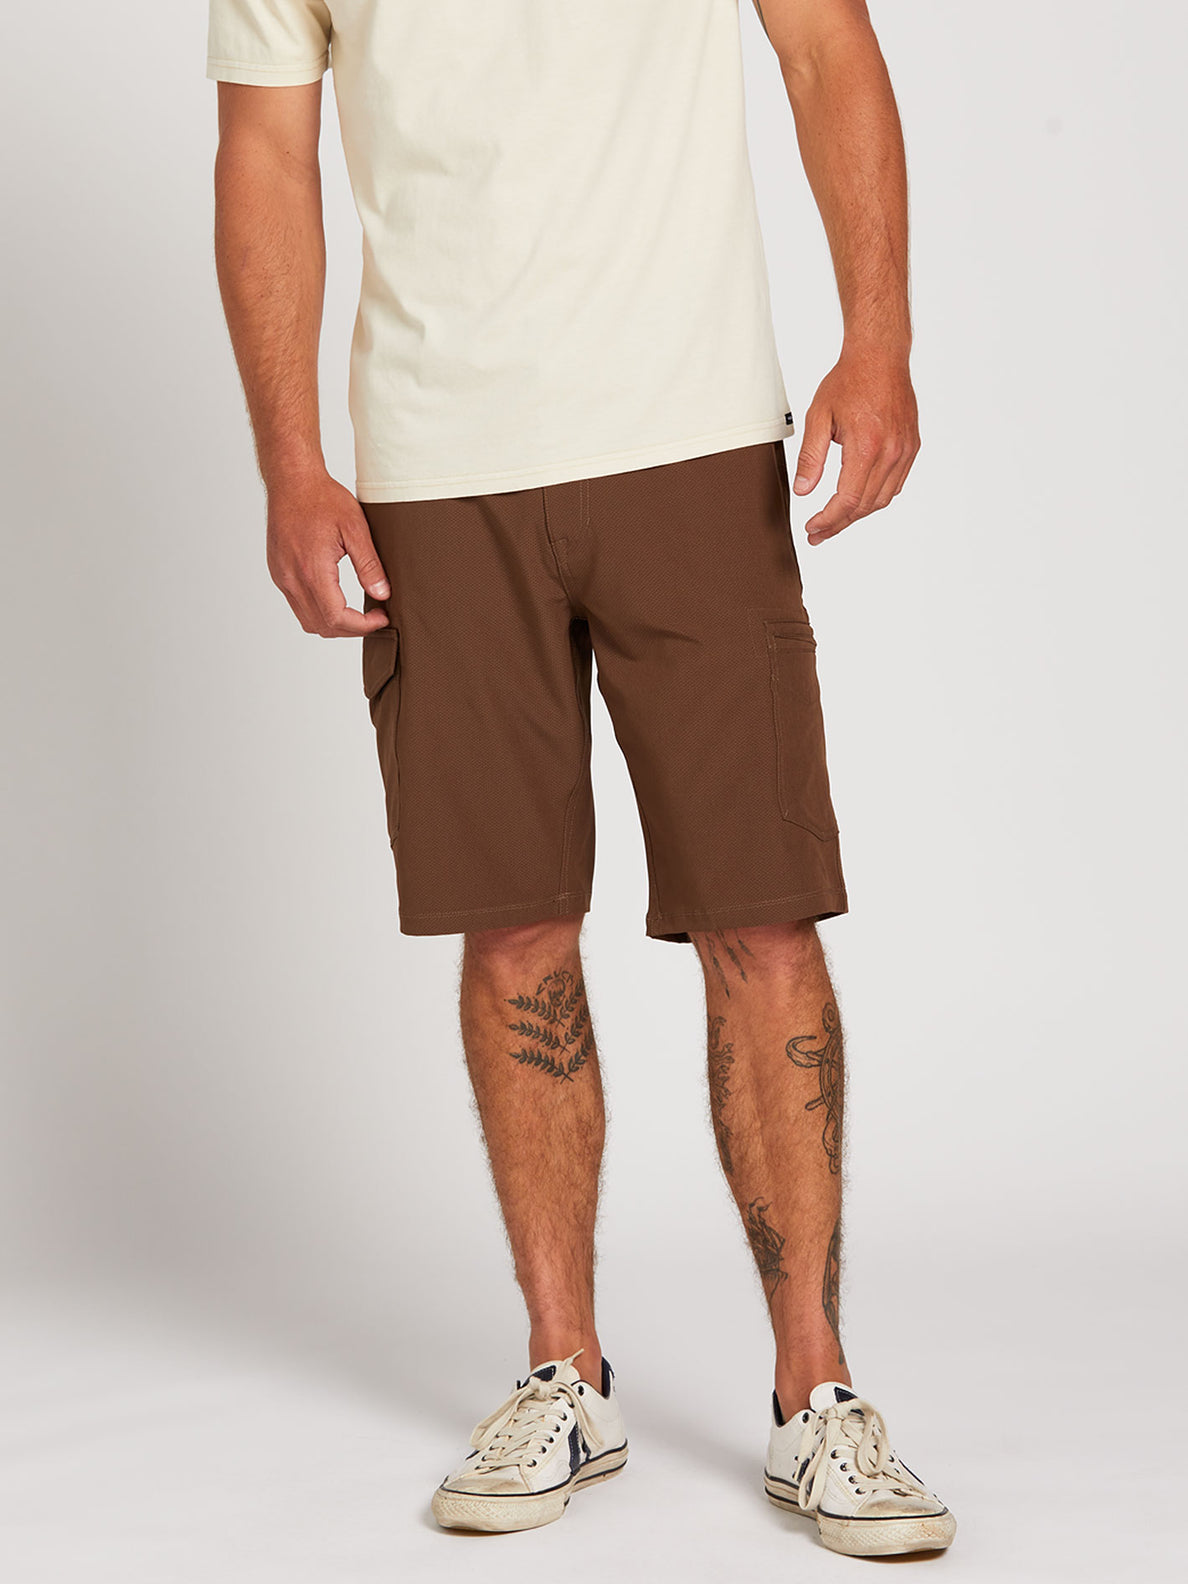 Surf N' Turf Dry Cargo Hybrid Shorts - Vintage Brown (A3212004_VBN) [1]